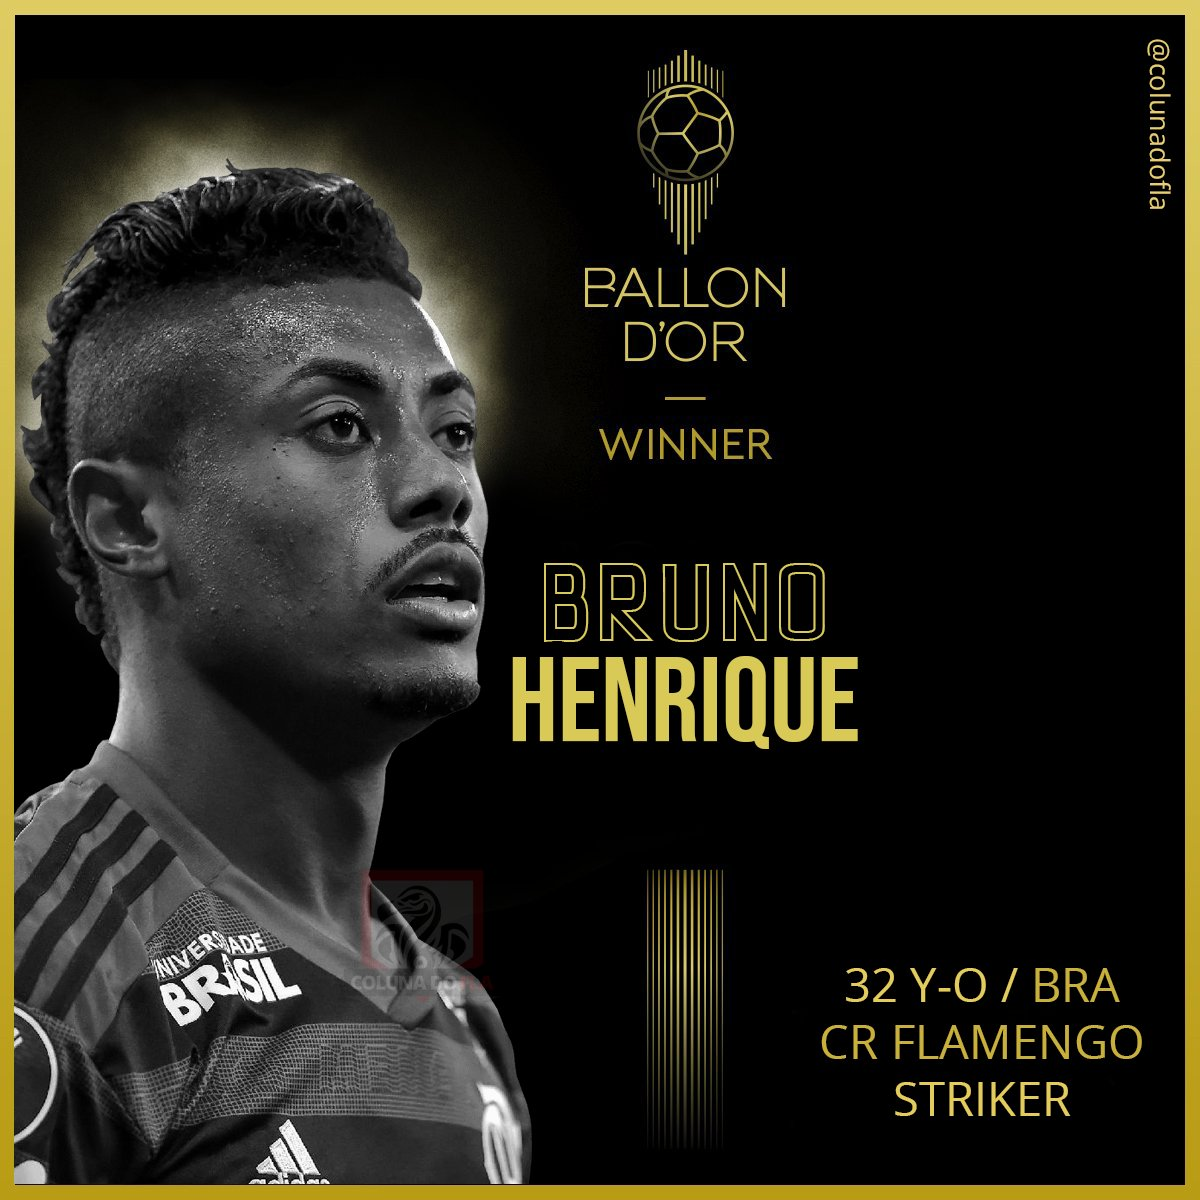 Bruno Henrique from @Flamengo is the 2019 Ballon d'Or winner! IT'S THE FIRST! #ballondor<br>http://pic.twitter.com/6qlKrRRNoz